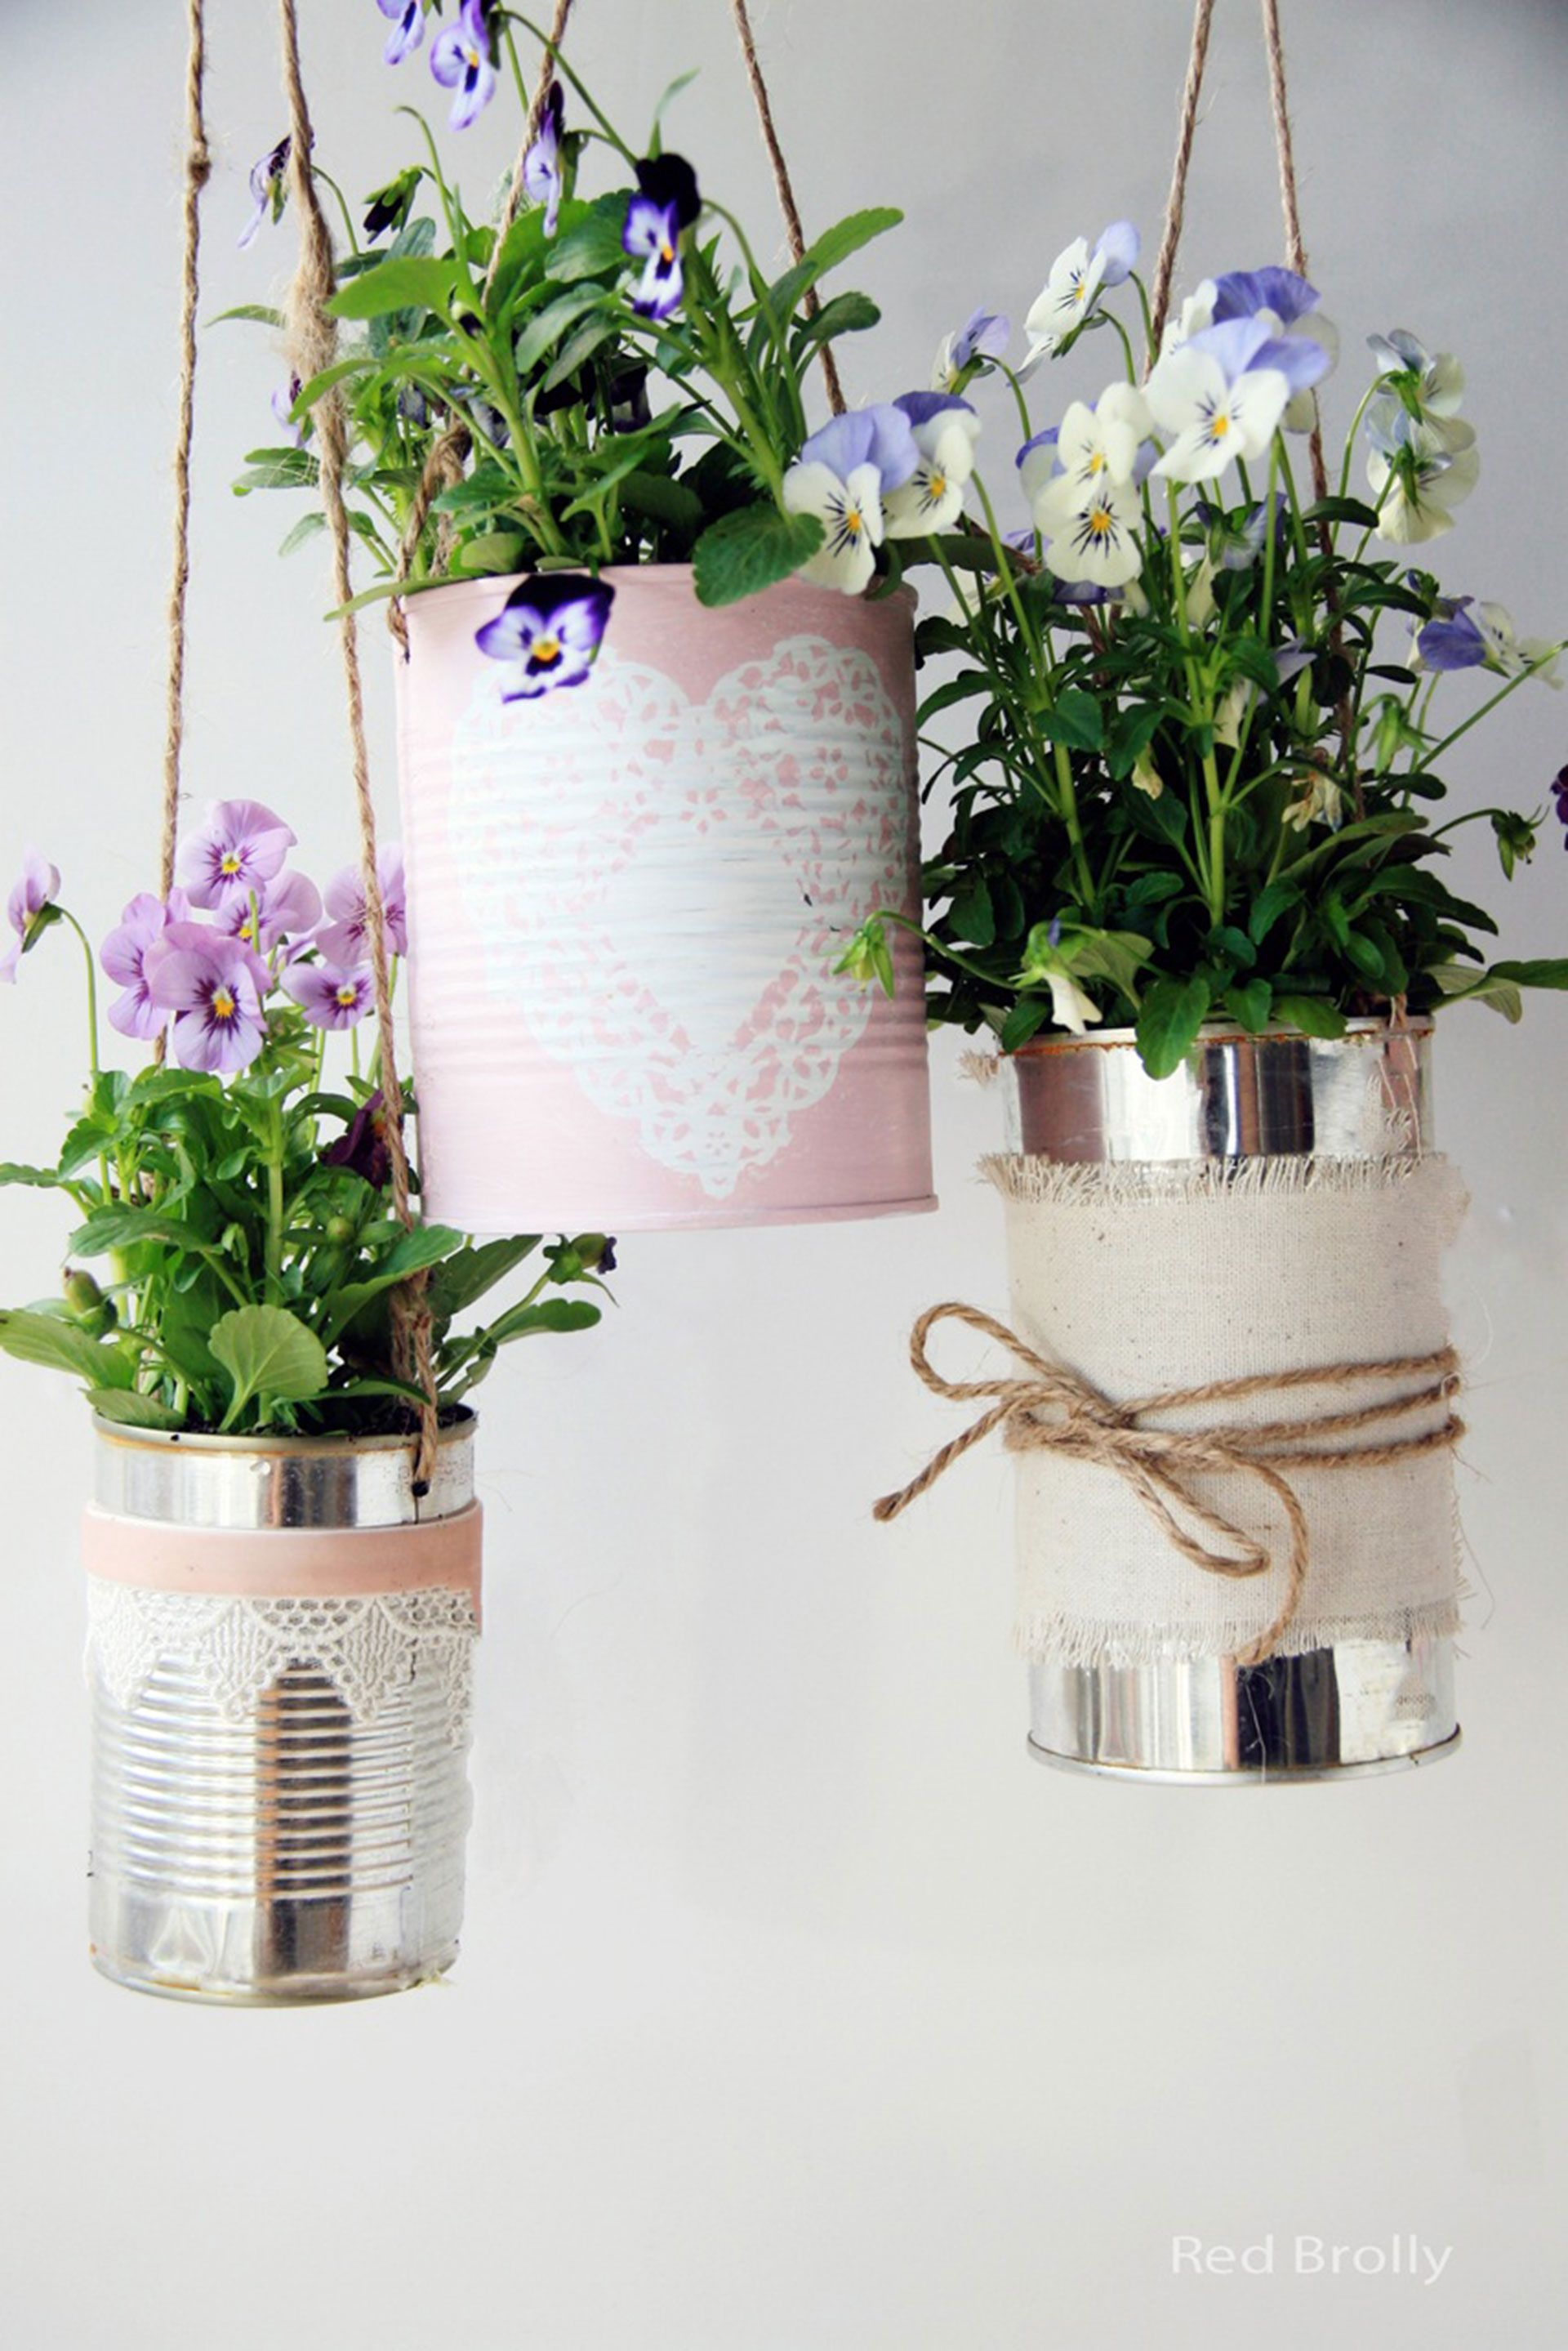 Good Housekeeping & 9 Unique DIY Planters - How To Make a Planter